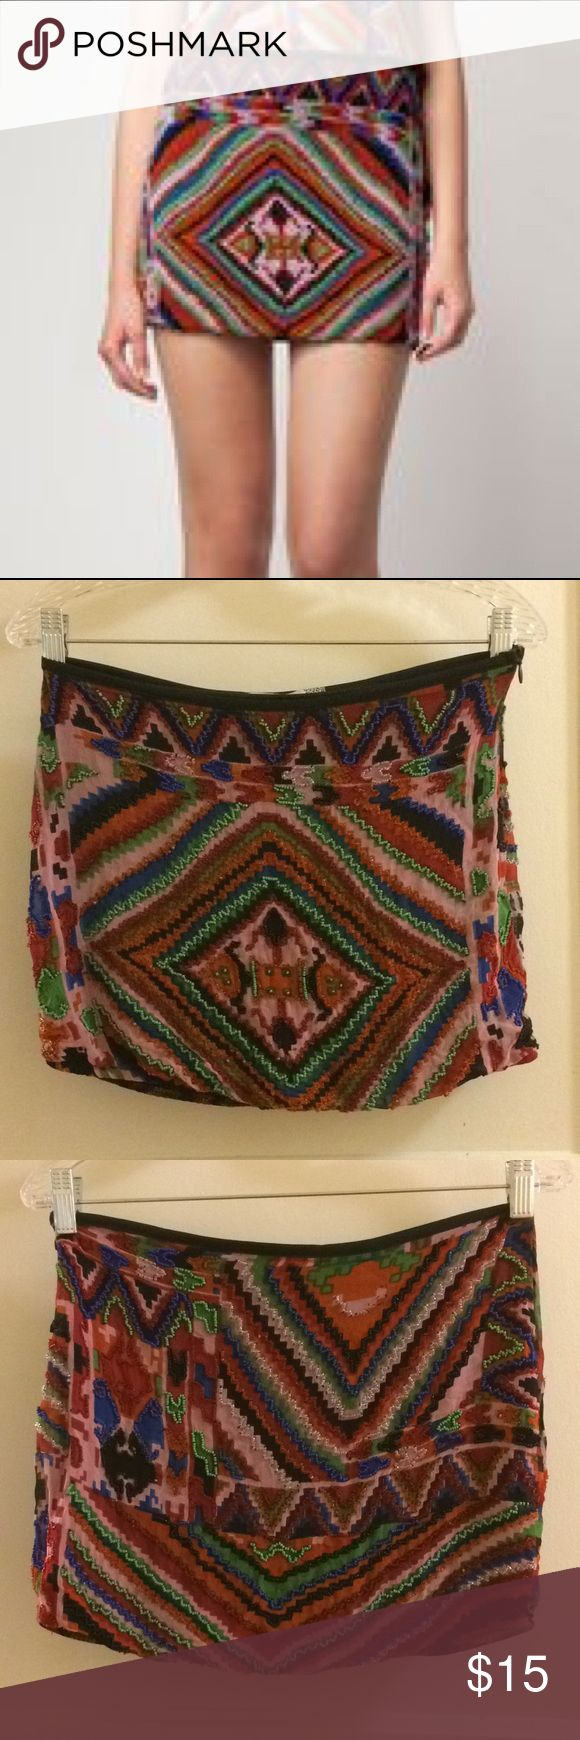 Bershka dressy collection beaded mini skirt This skirt is really cute, but really short!! Elastic bottom holds skirt in place. Fun colors and geometric pattern. Beads missing from a couple small spots as seen in photos, but still only lightly worn. Says M but fits very small Bershka Skirts Mini